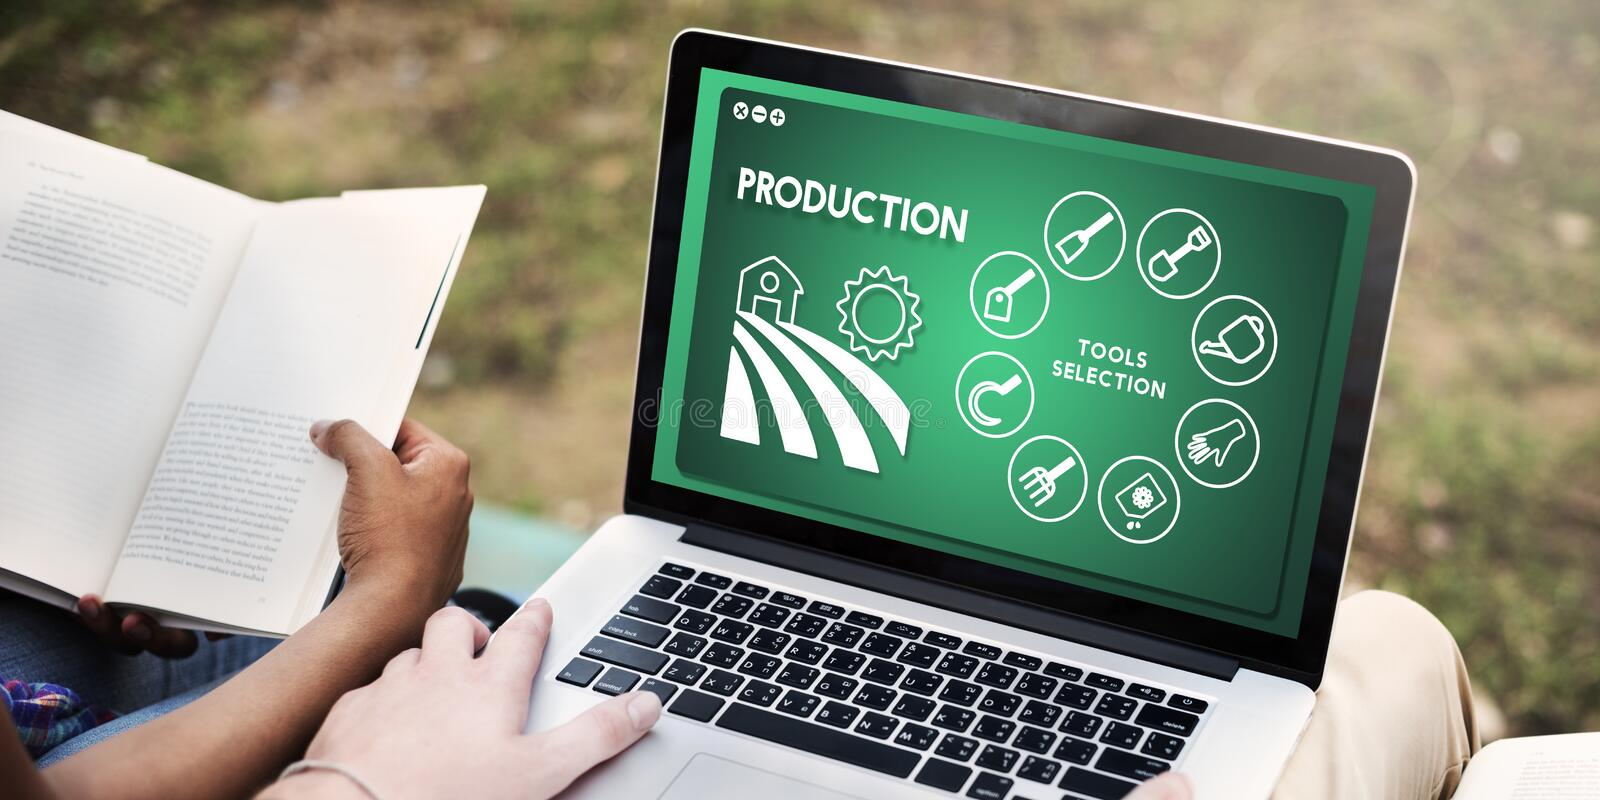 Agriculture Harvest Agronomy Cultivation Production Concept. People Studying Agriculture Harvest Agronomy Cultivation Production royalty free stock photos